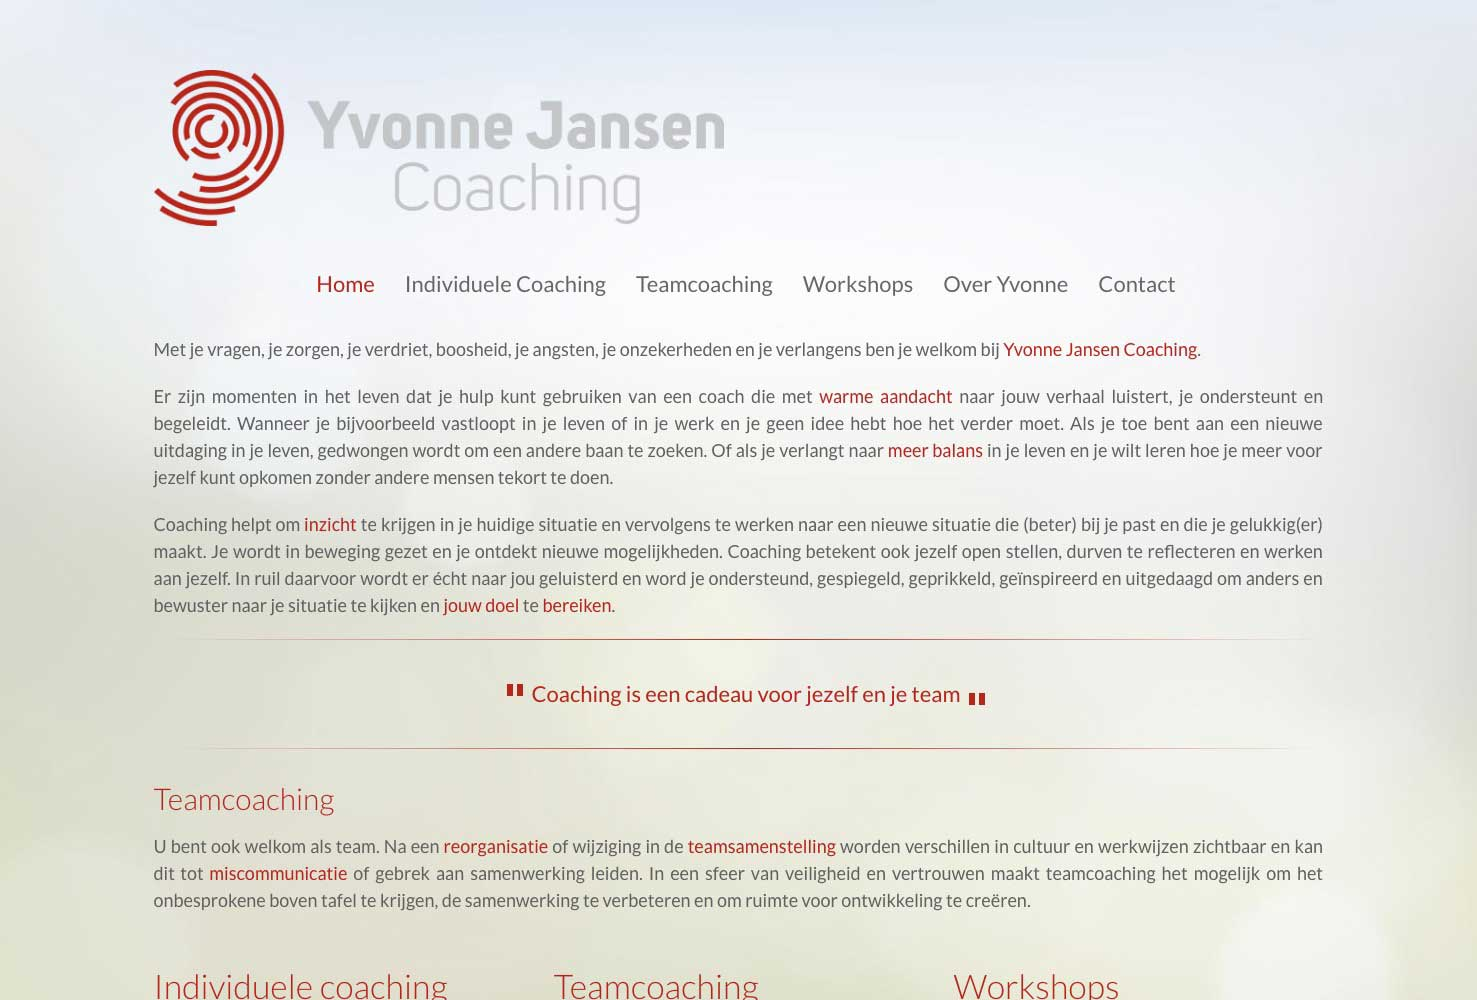 Yvonne Jansen Coaching